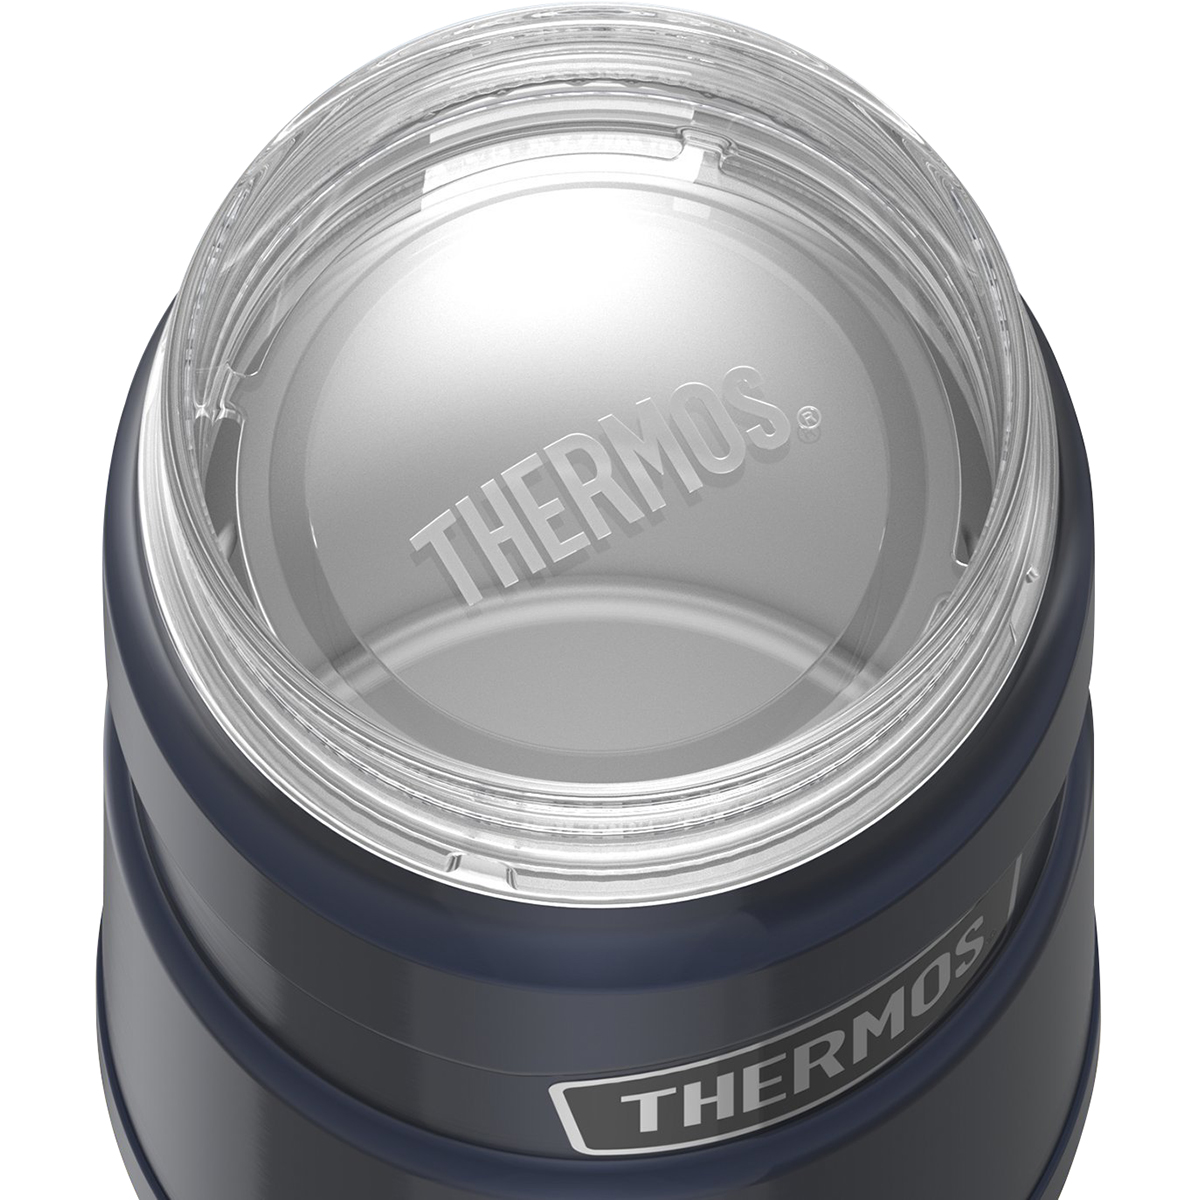 Stainless King Stainless Steel Can Insulator Tumbler Thermos 10 oz